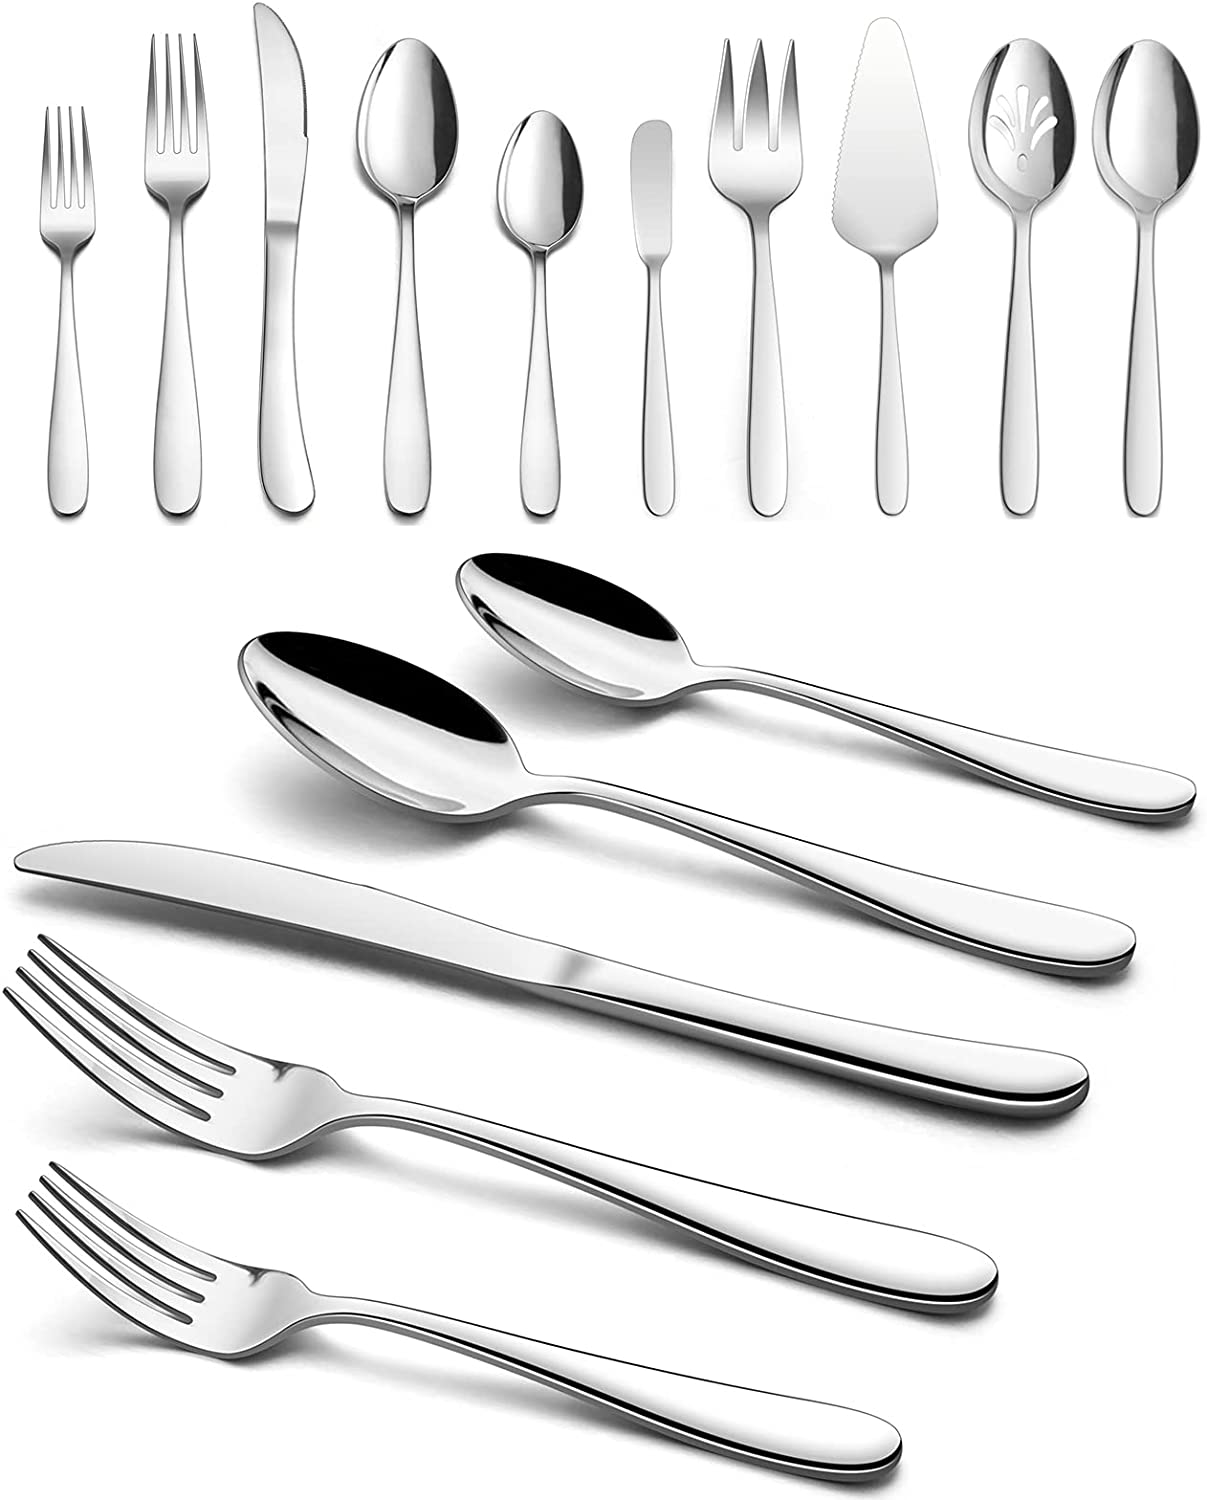 Heavy Duty Silverware Set with Serving Utensils, HaWare 45 Pieces Stainless Steel Flatware Set, Heavy Weight Eating Utensils Tableware for 8, Modern Cutlery for Home, Dishwasher Safe, Mirror Polished